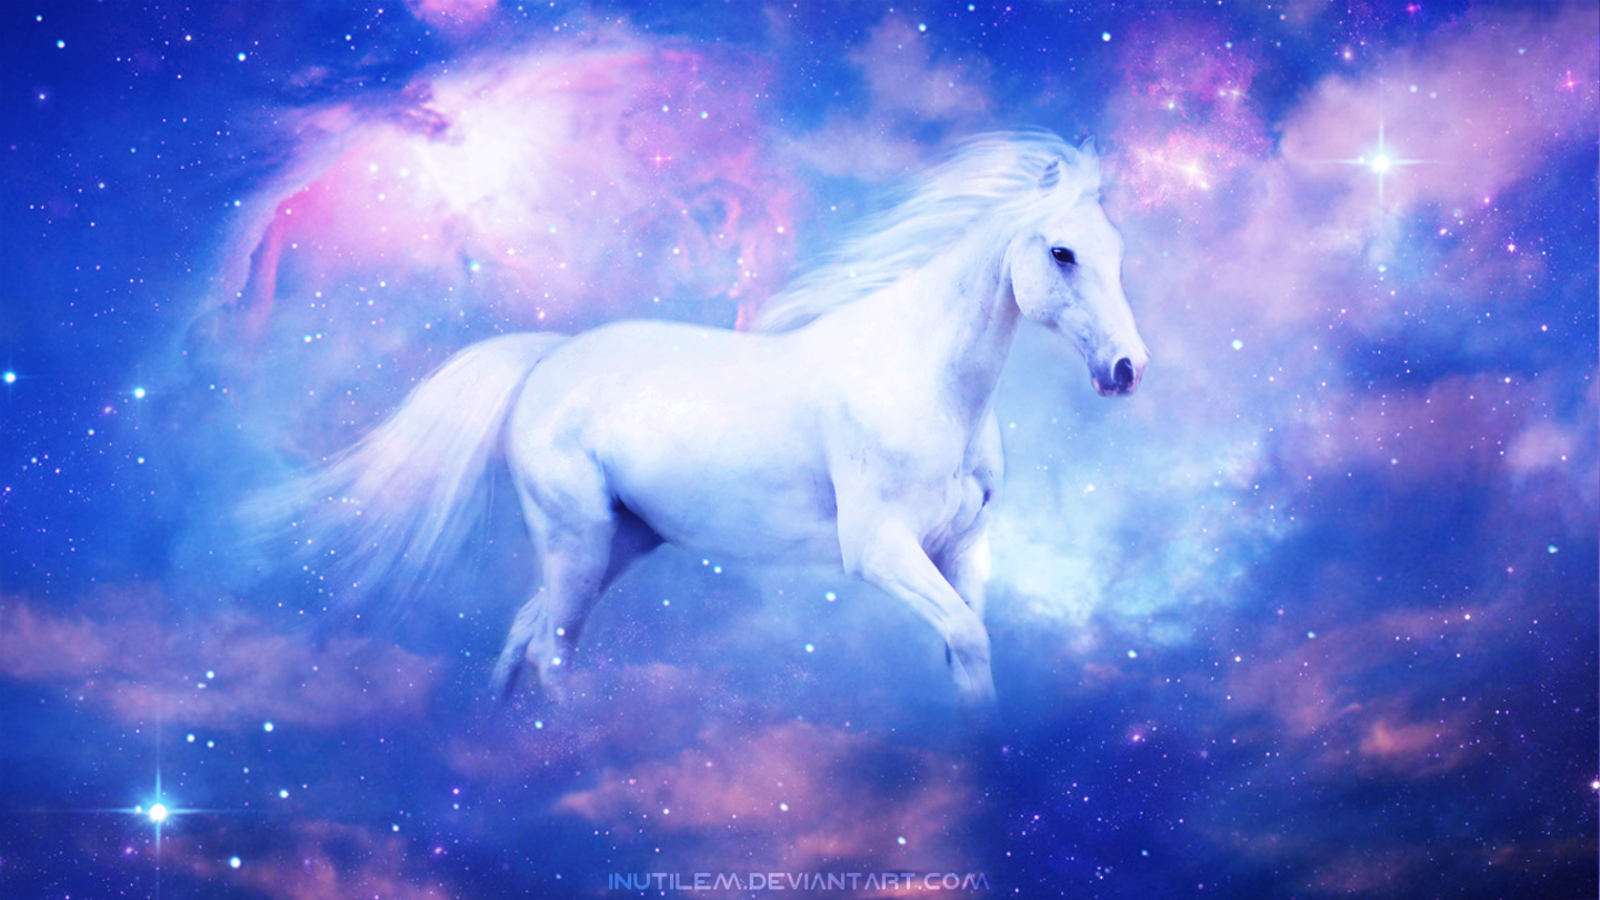 Equine Serenity Wallpaper And Background Image